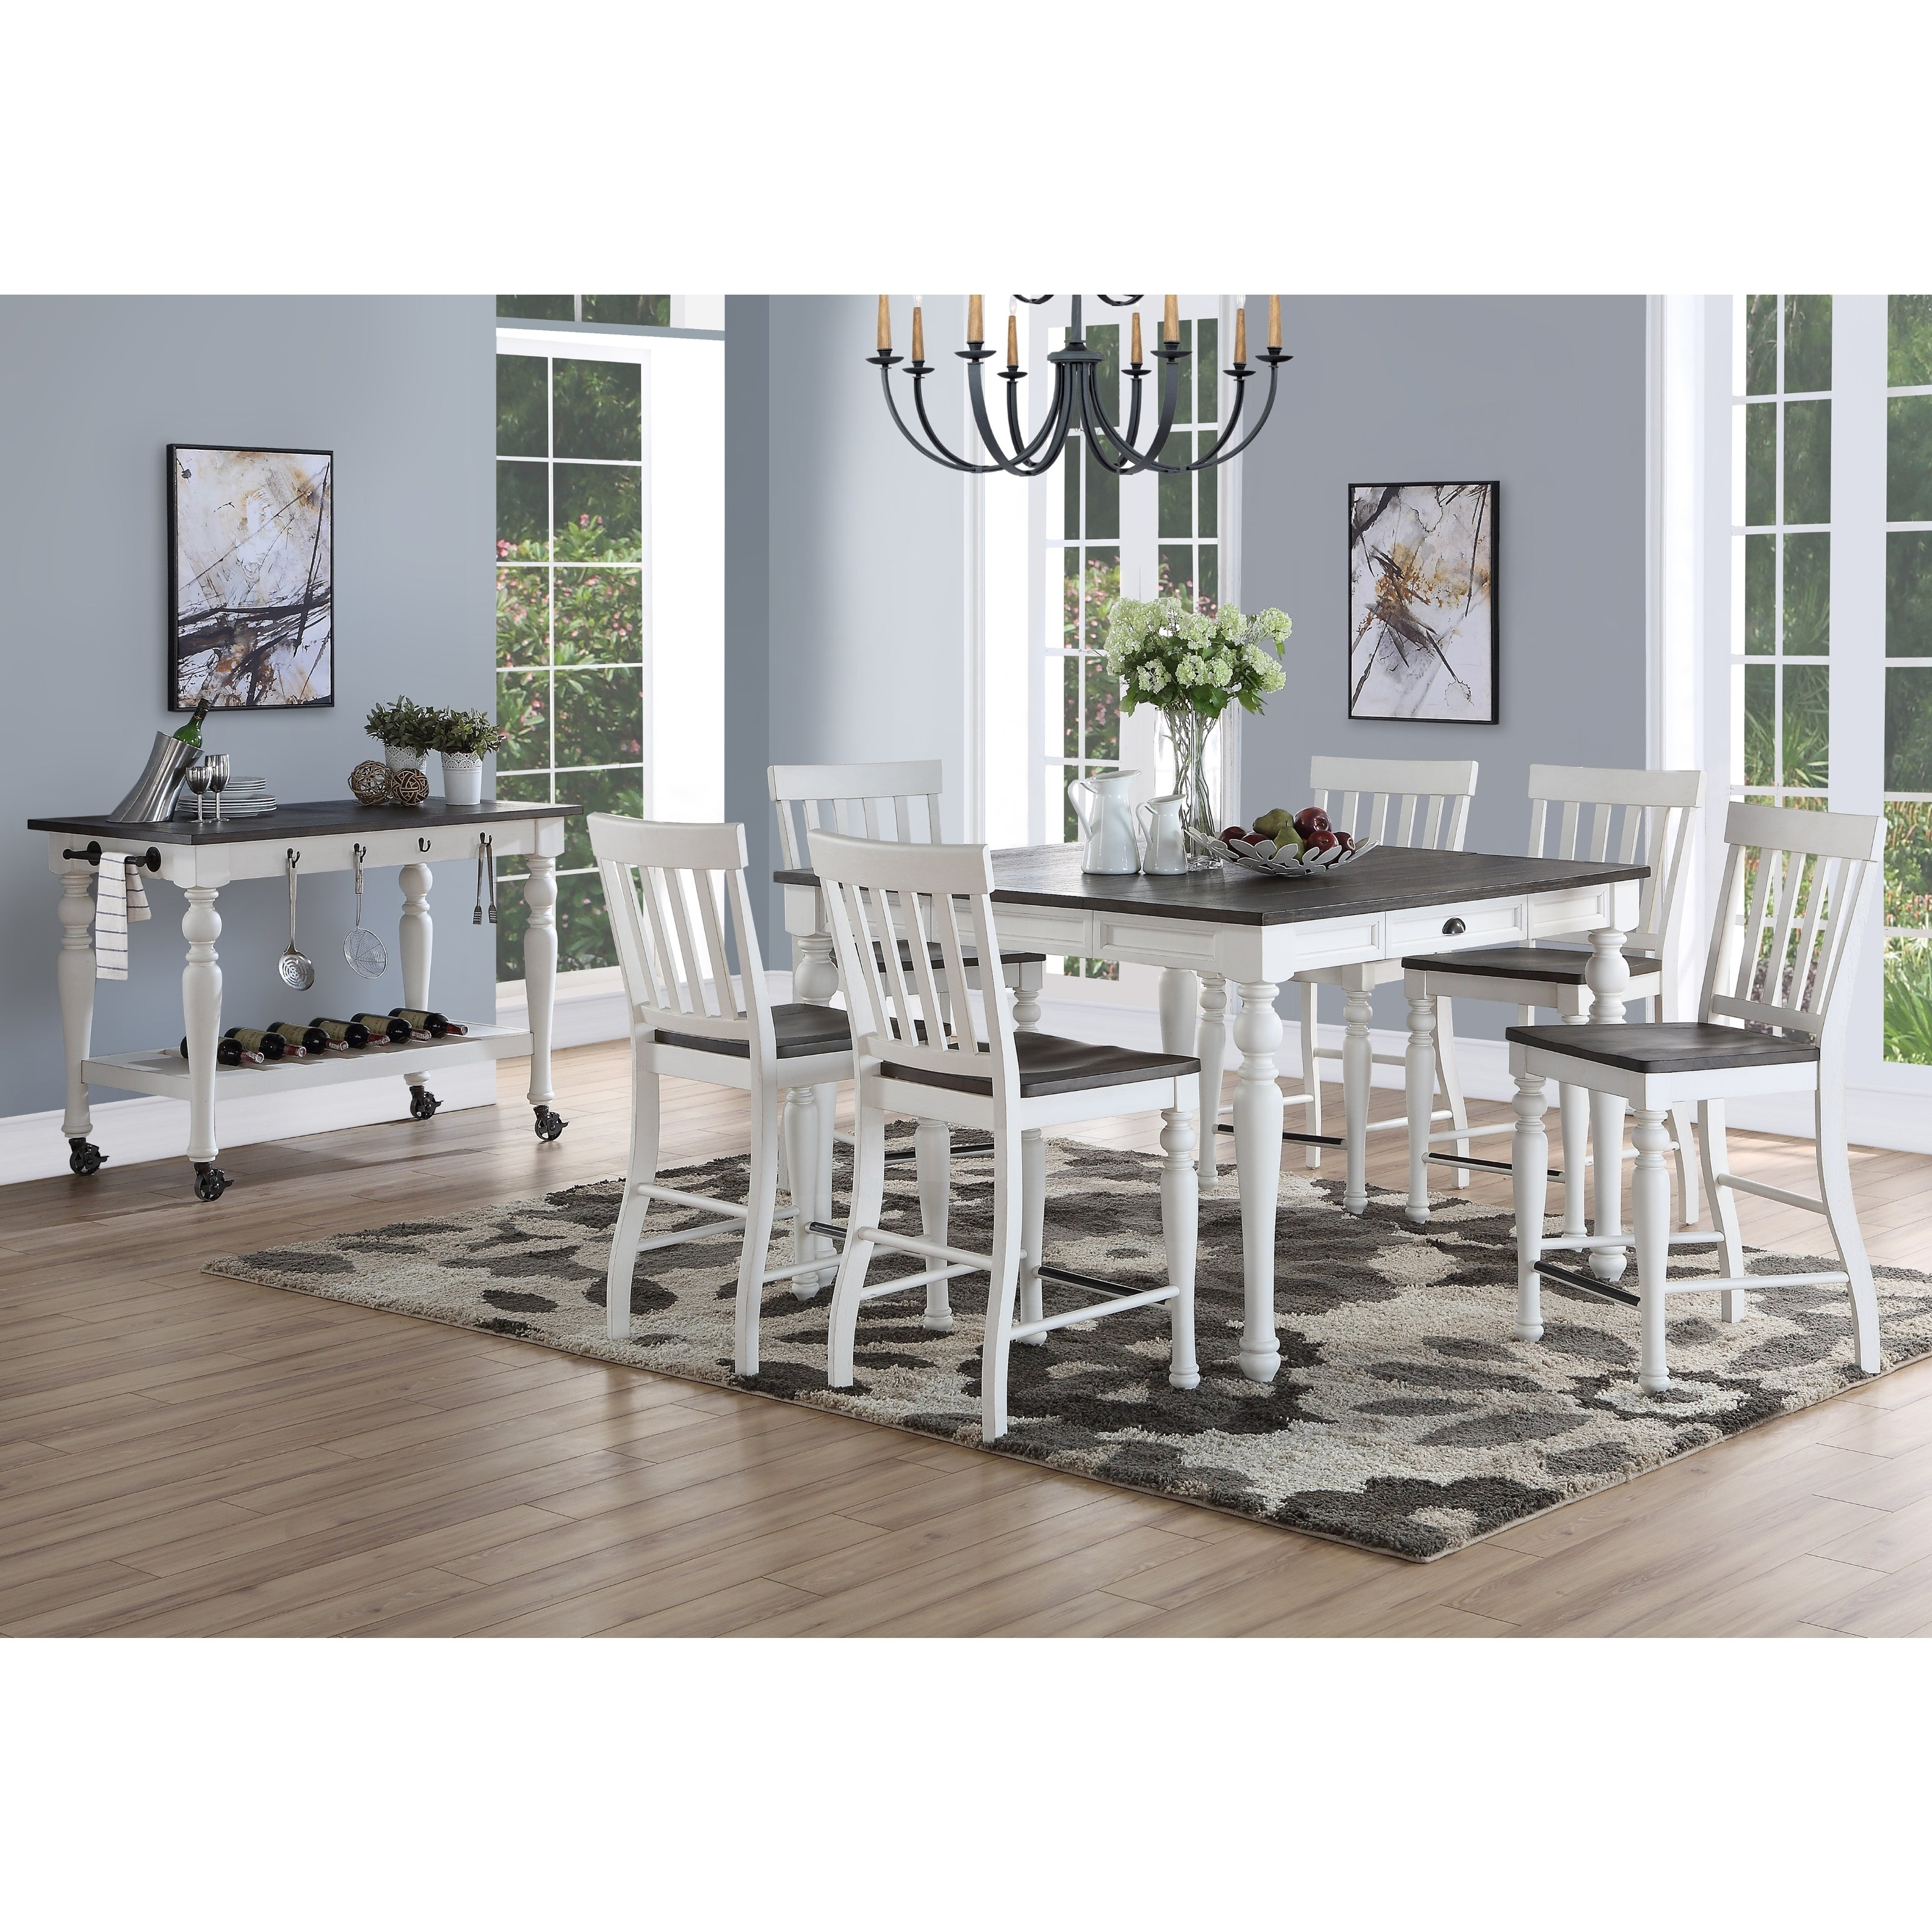 Jillian Farmhouse Counter Height Dining Set By Greyson Living On Sale Overstock 22251700